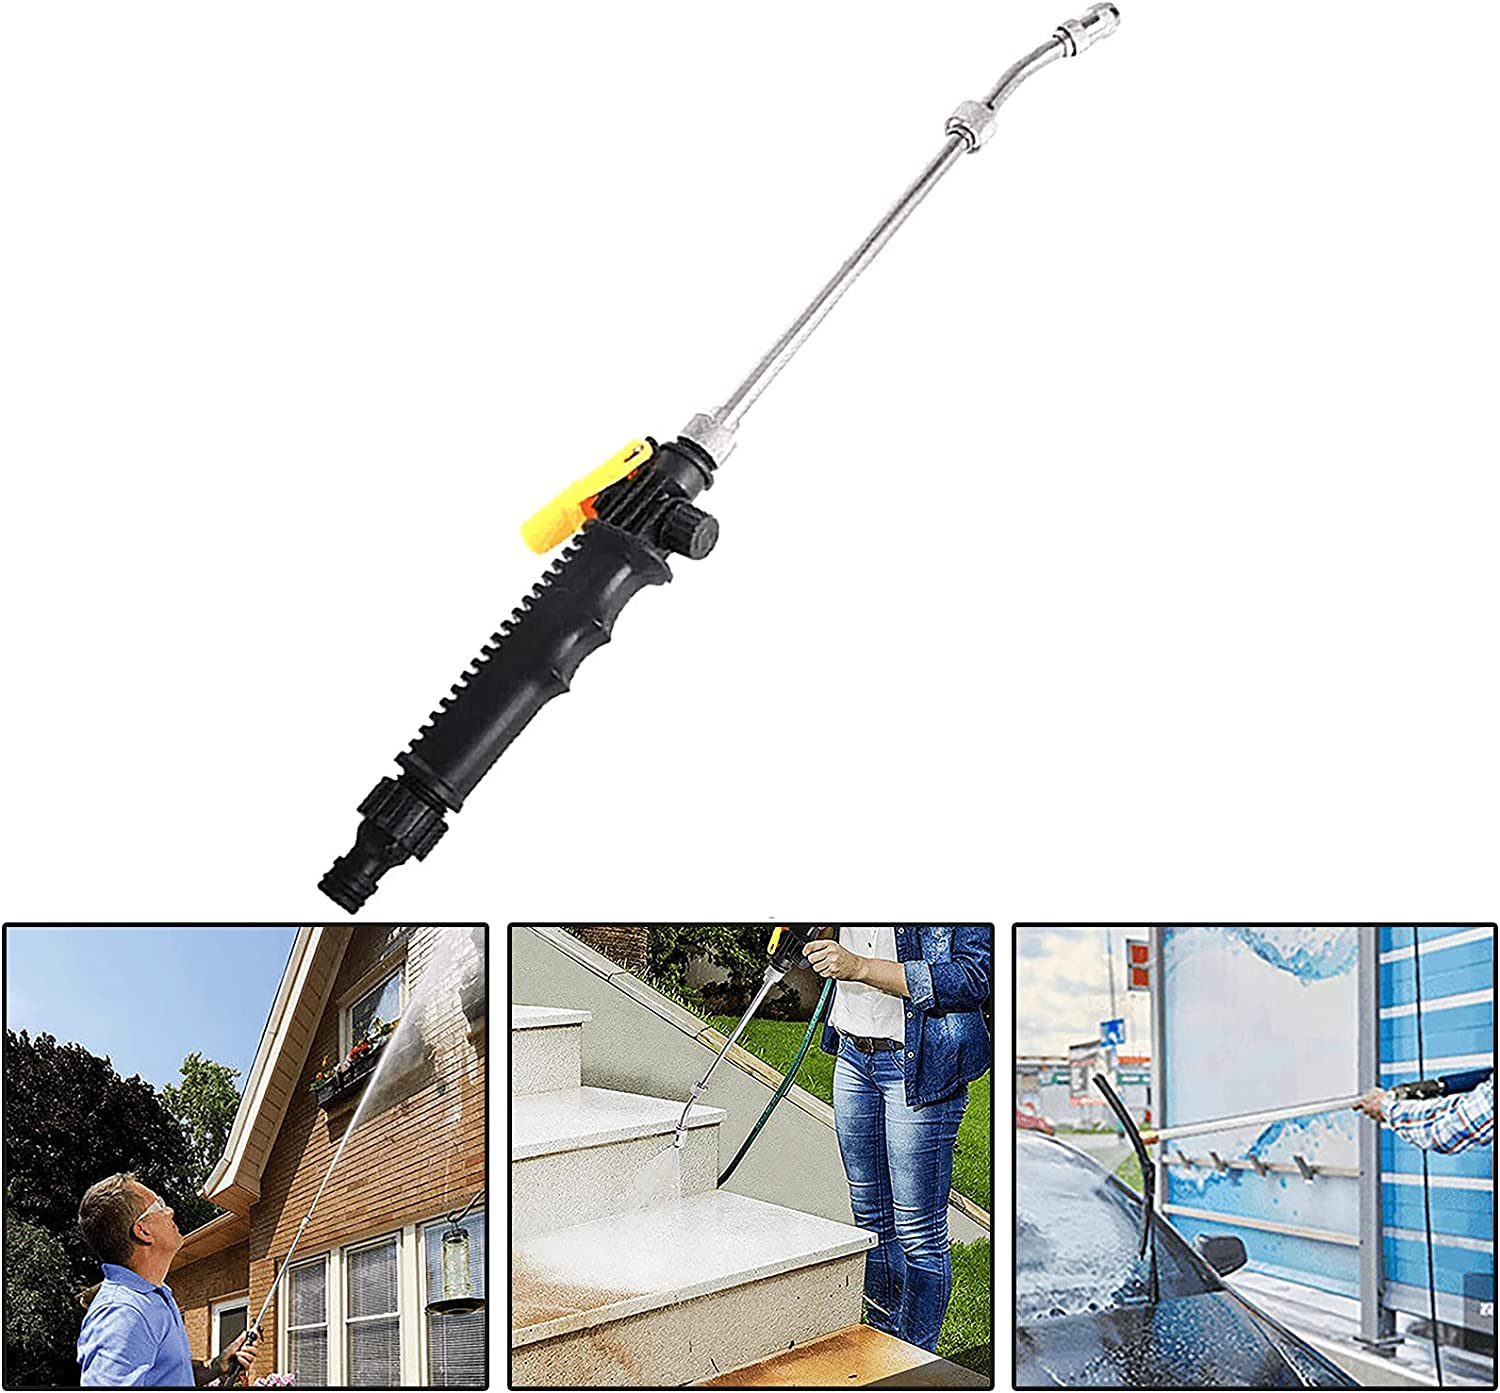 30 cm 2-in-1 High-Pressure Cleaner,Extendable Jet Washer High Pressure Power Washer,Flexible Hose Nozzle,for Car Washer, Window Water Cleaner,Garden Cleaning Outdoor